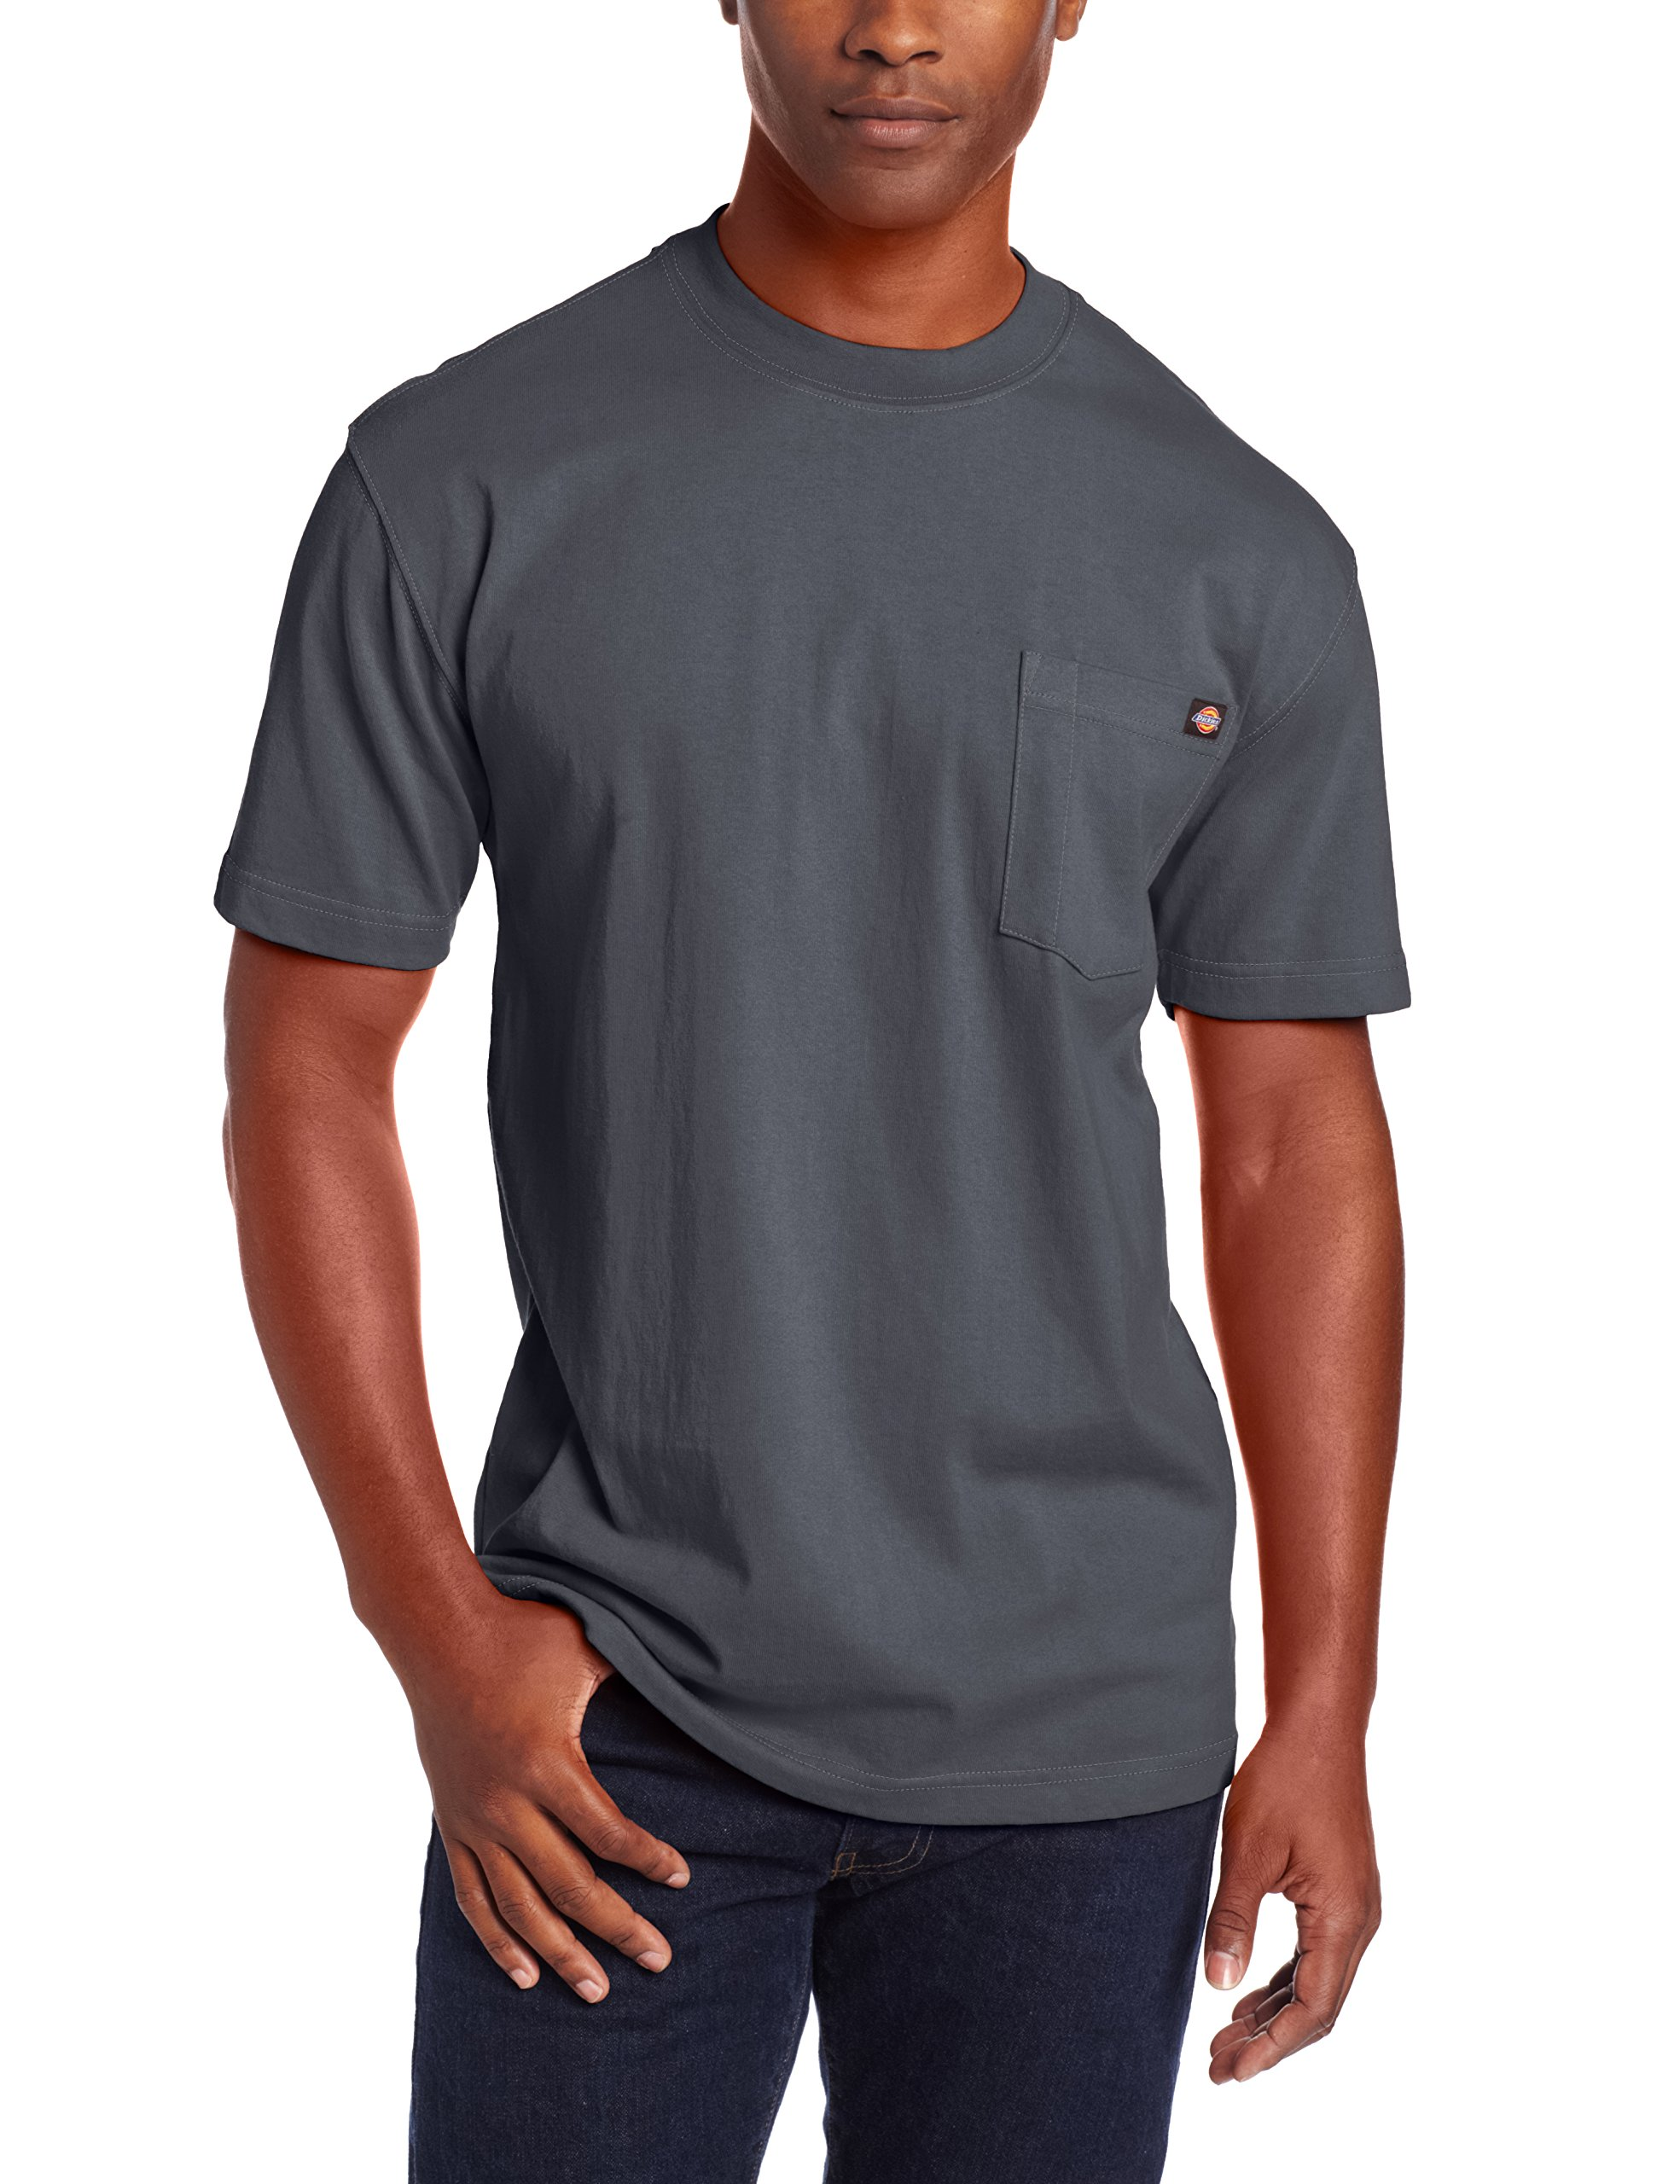 Dickie's Men's Short Sleeve Heavyweight Crew Neck Pocket T-Shirt, Charcoal, Large